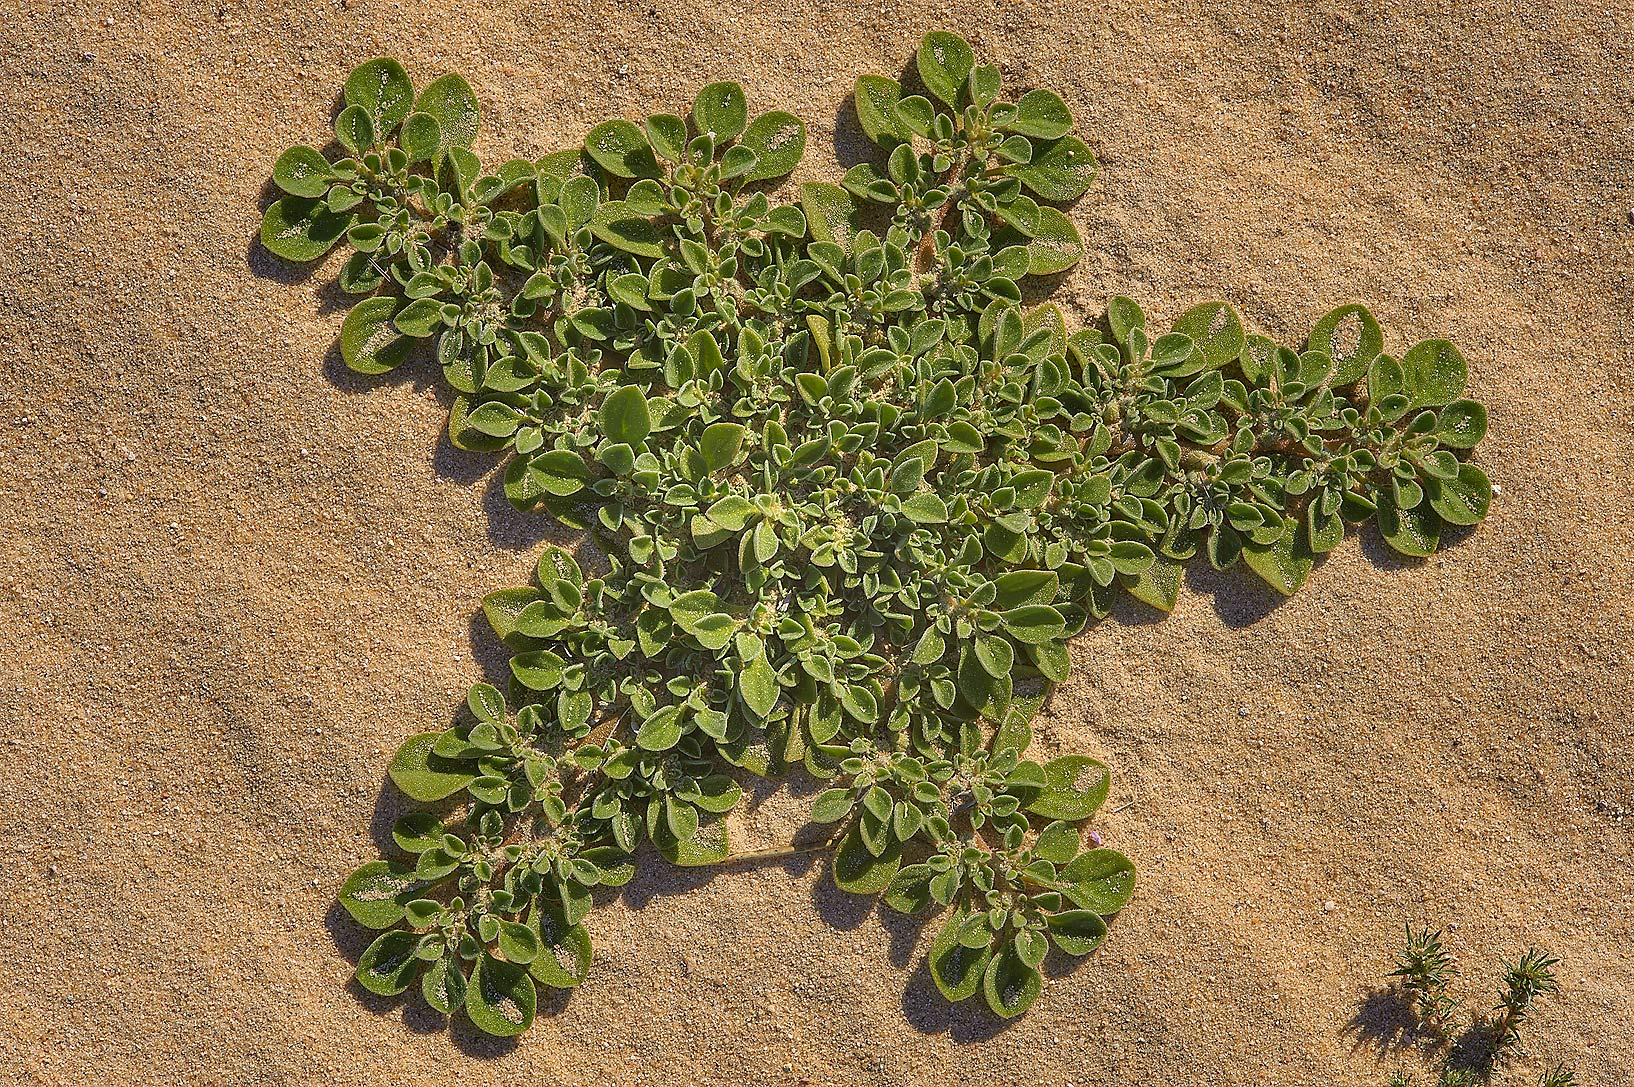 Starfish shaped desert plant of purslane-leaved...Sawda Natheel Rd. in southern Qatar